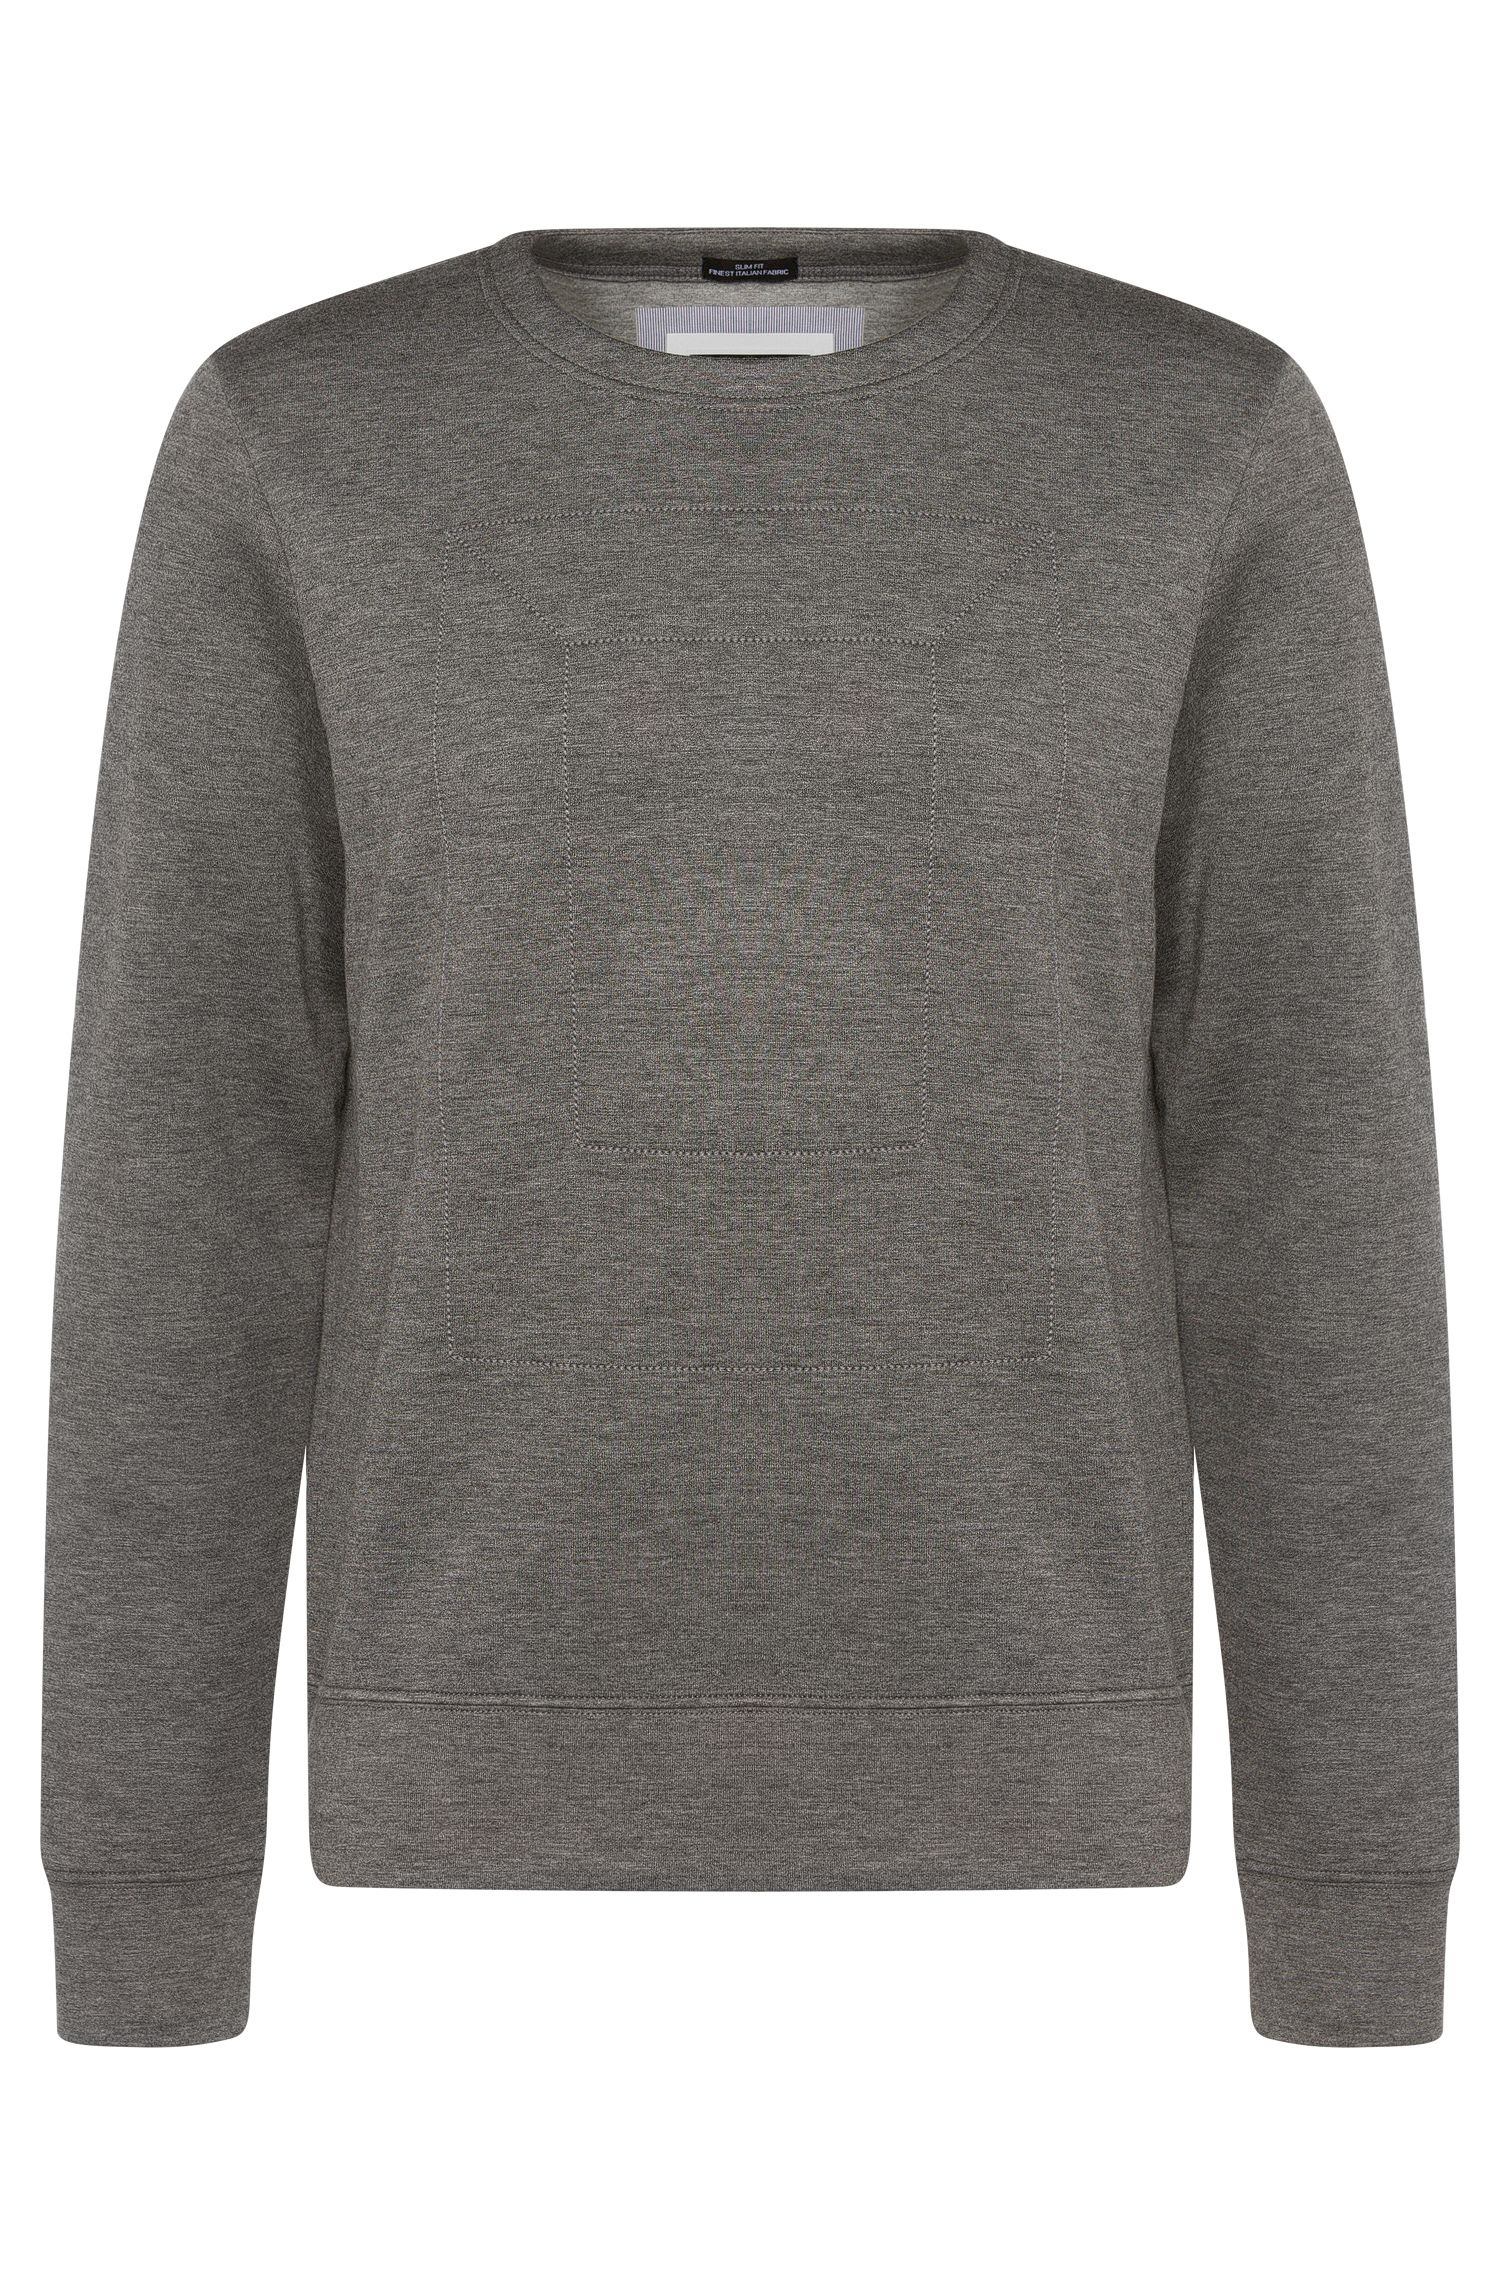 Meliertes Slim-Fit Sweatshirt aus Stretch-Viskose: 'Skubic 07'